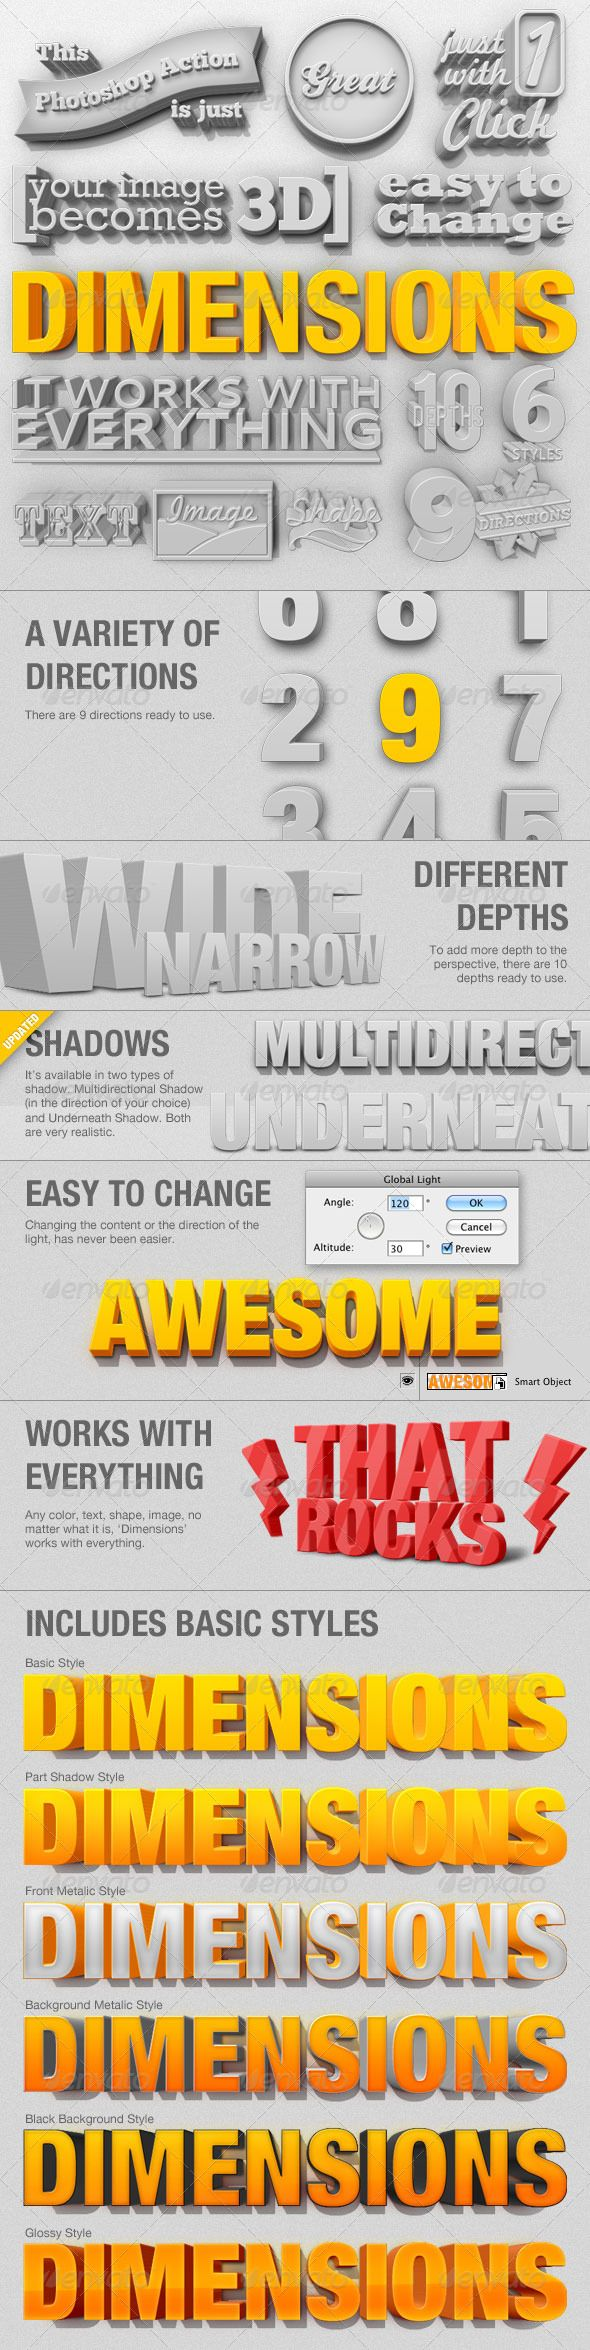 Photoshop 3D Generator that produces remarkable effects with text and logos.  Will add so much to a flat page on your blog or website.  #Photoshop #Photography Tips #fonts